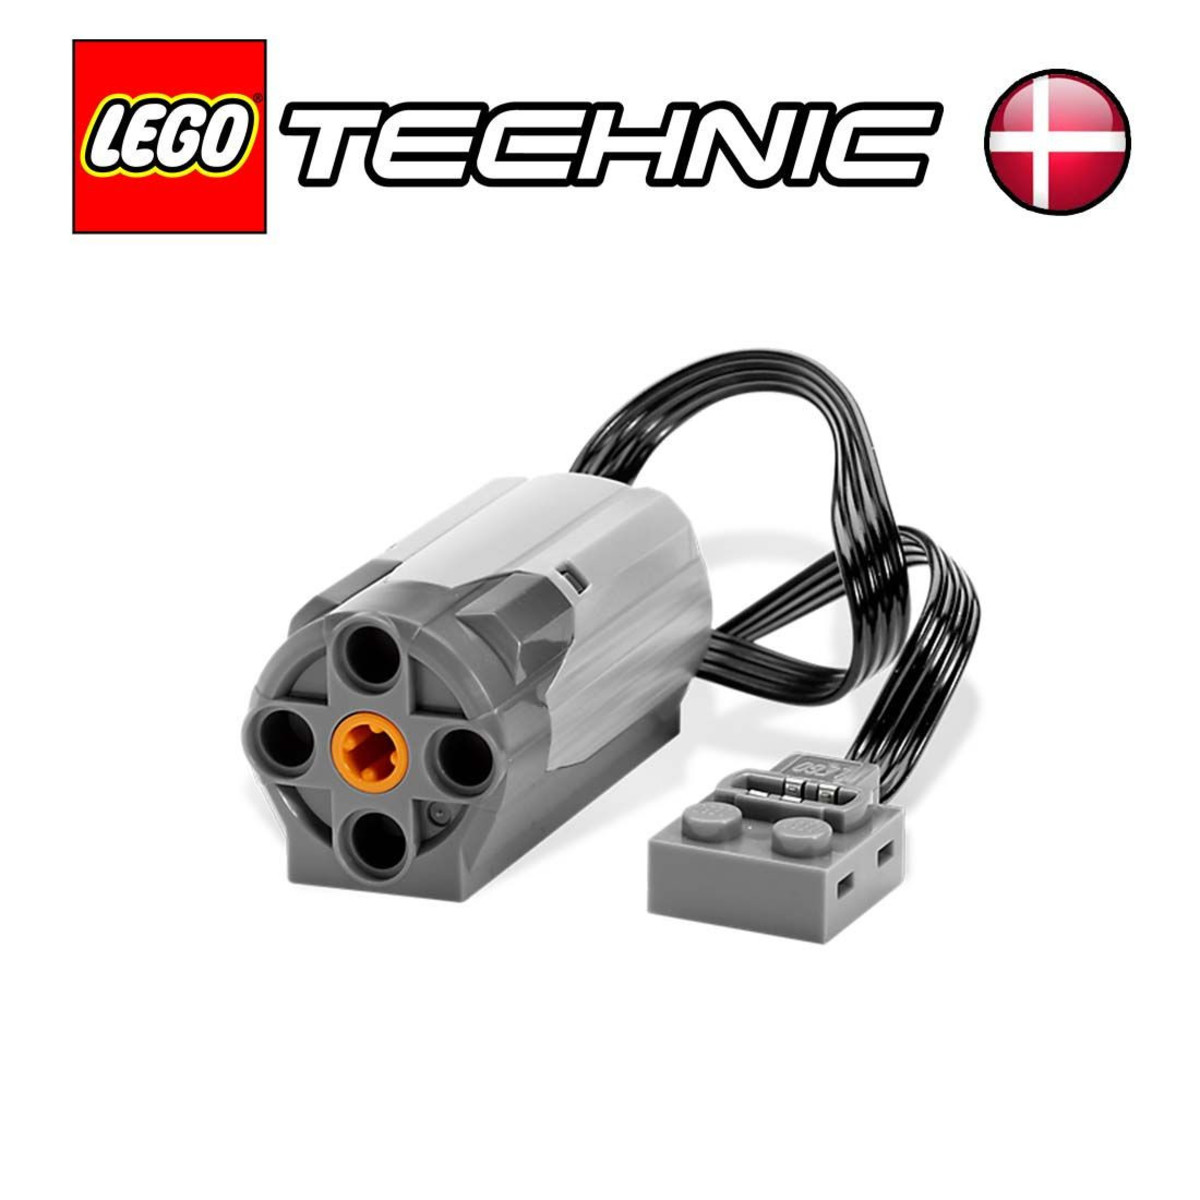 Technic 8883 Power Functions M-Motor